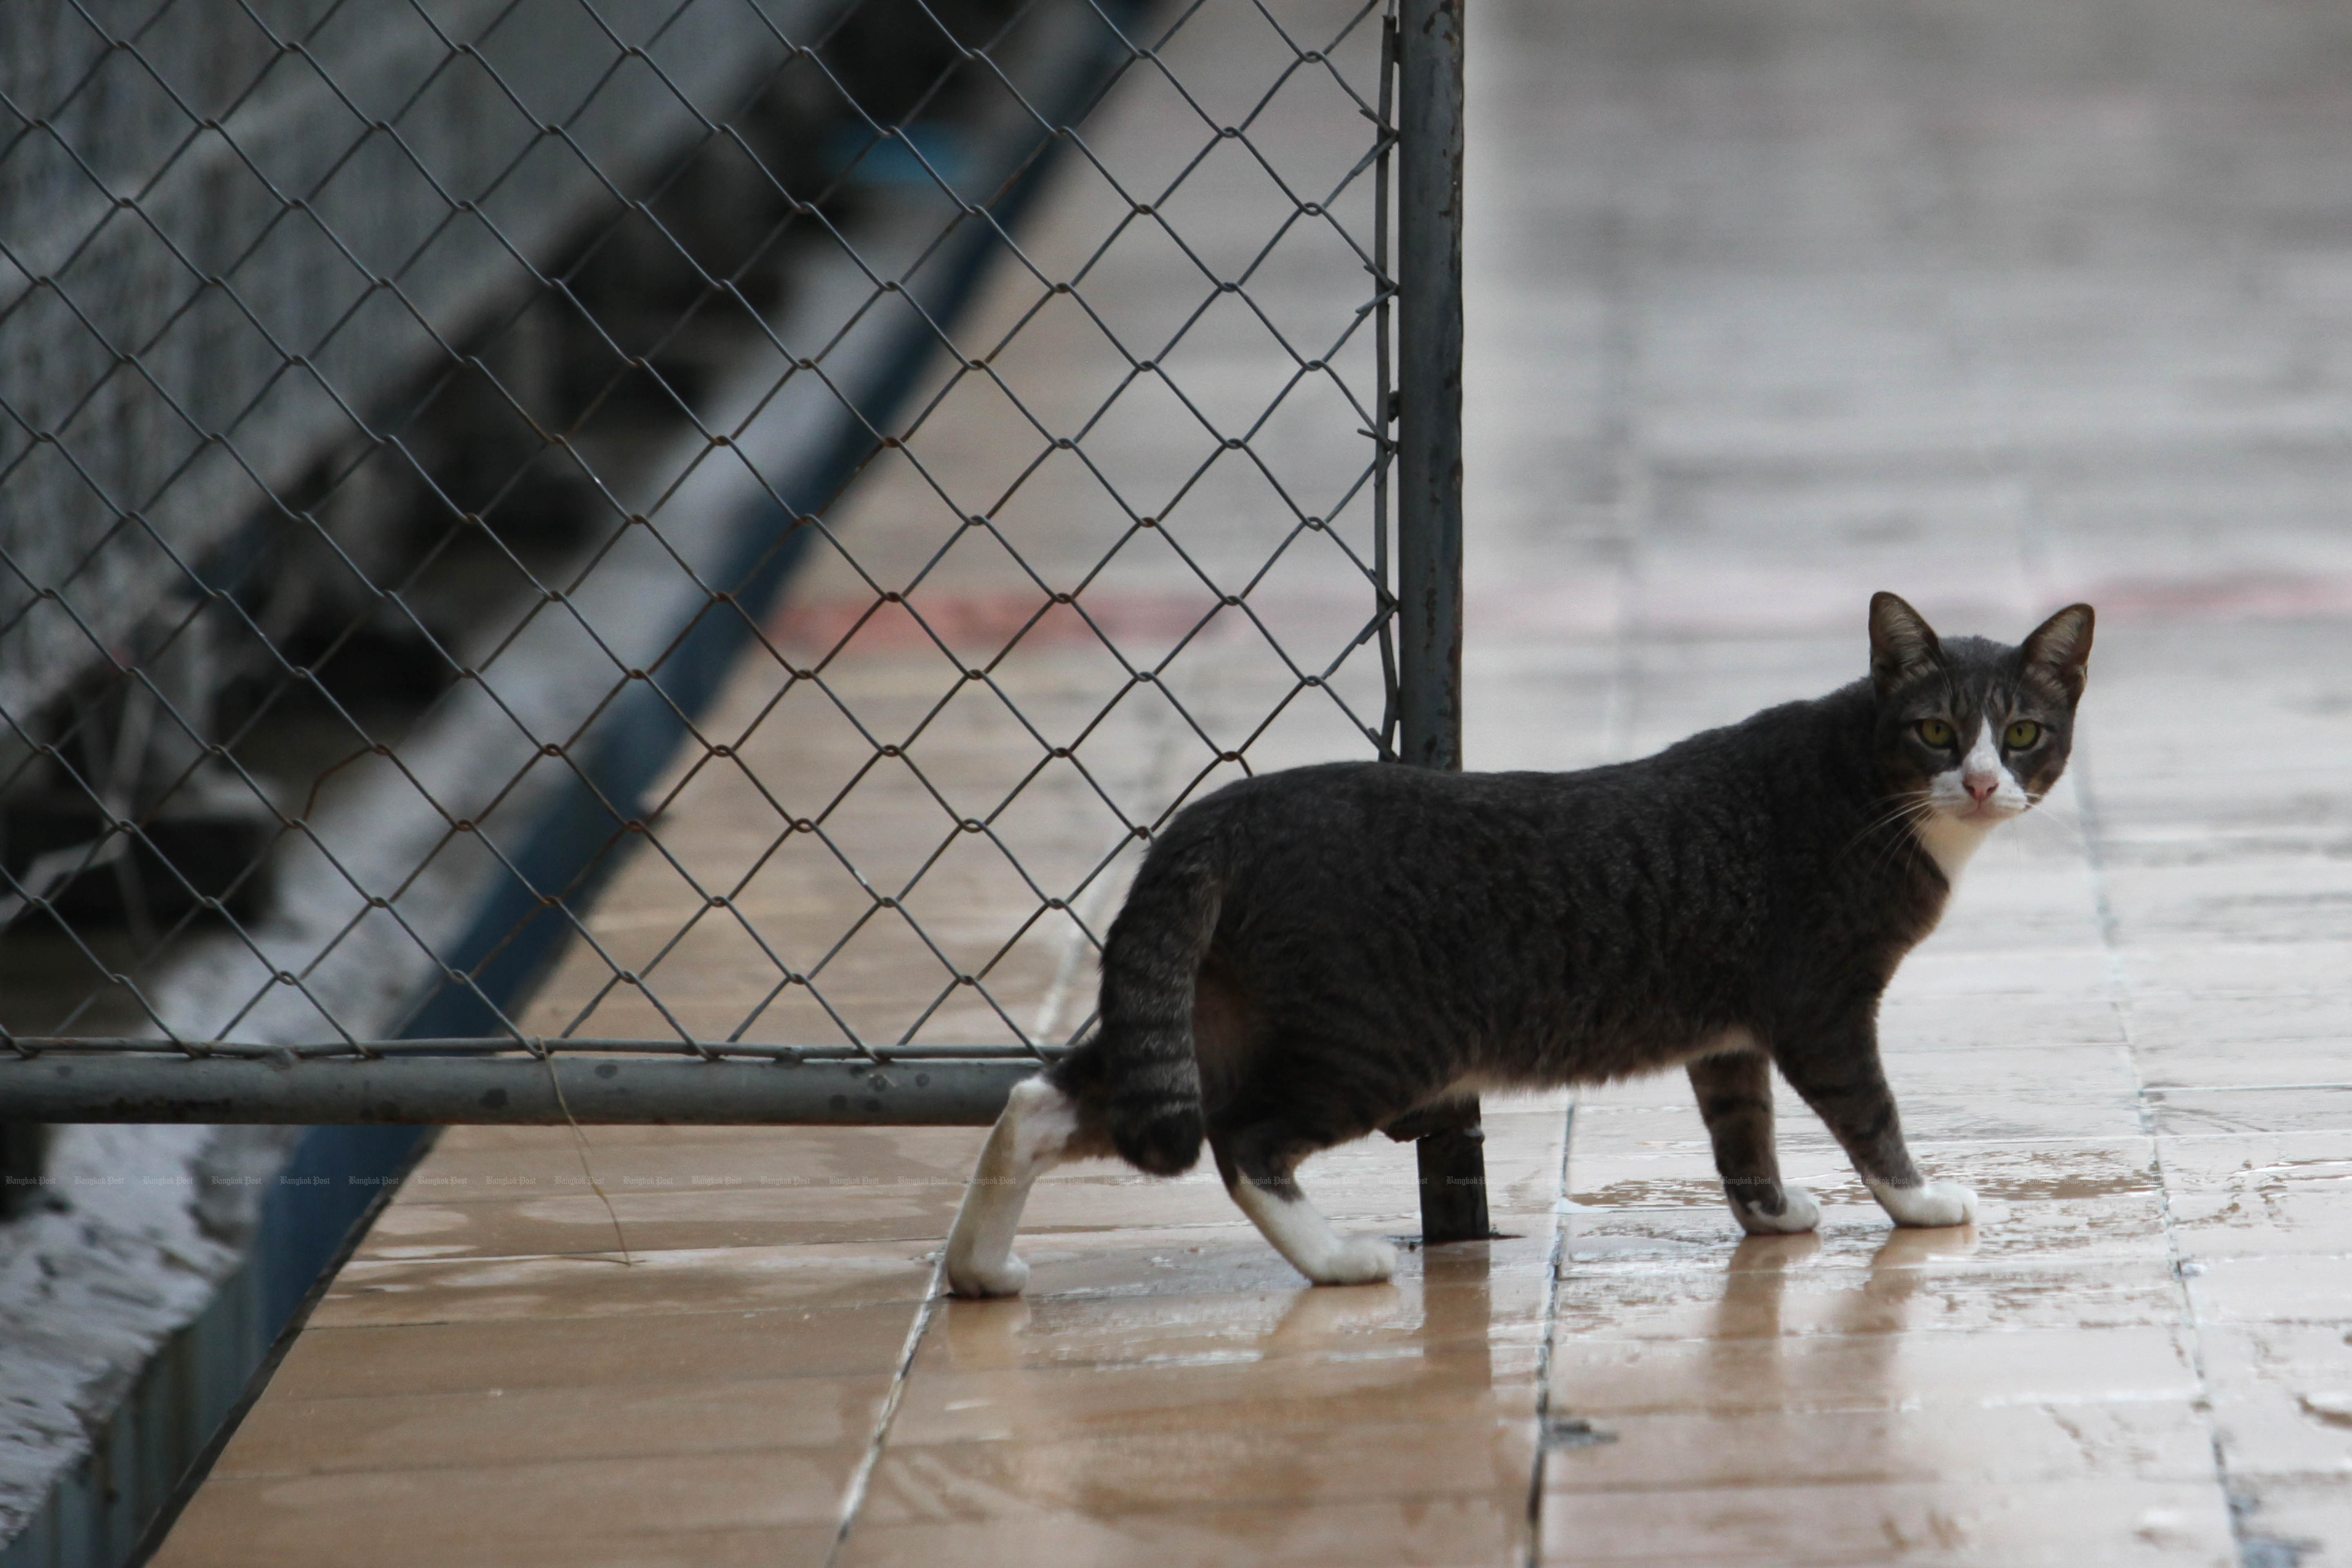 Shenzhen city in China plans to ban the eating of cats and dogs as part of the moves to contain the coronavirus outbreak. (Bangkok Post photo)